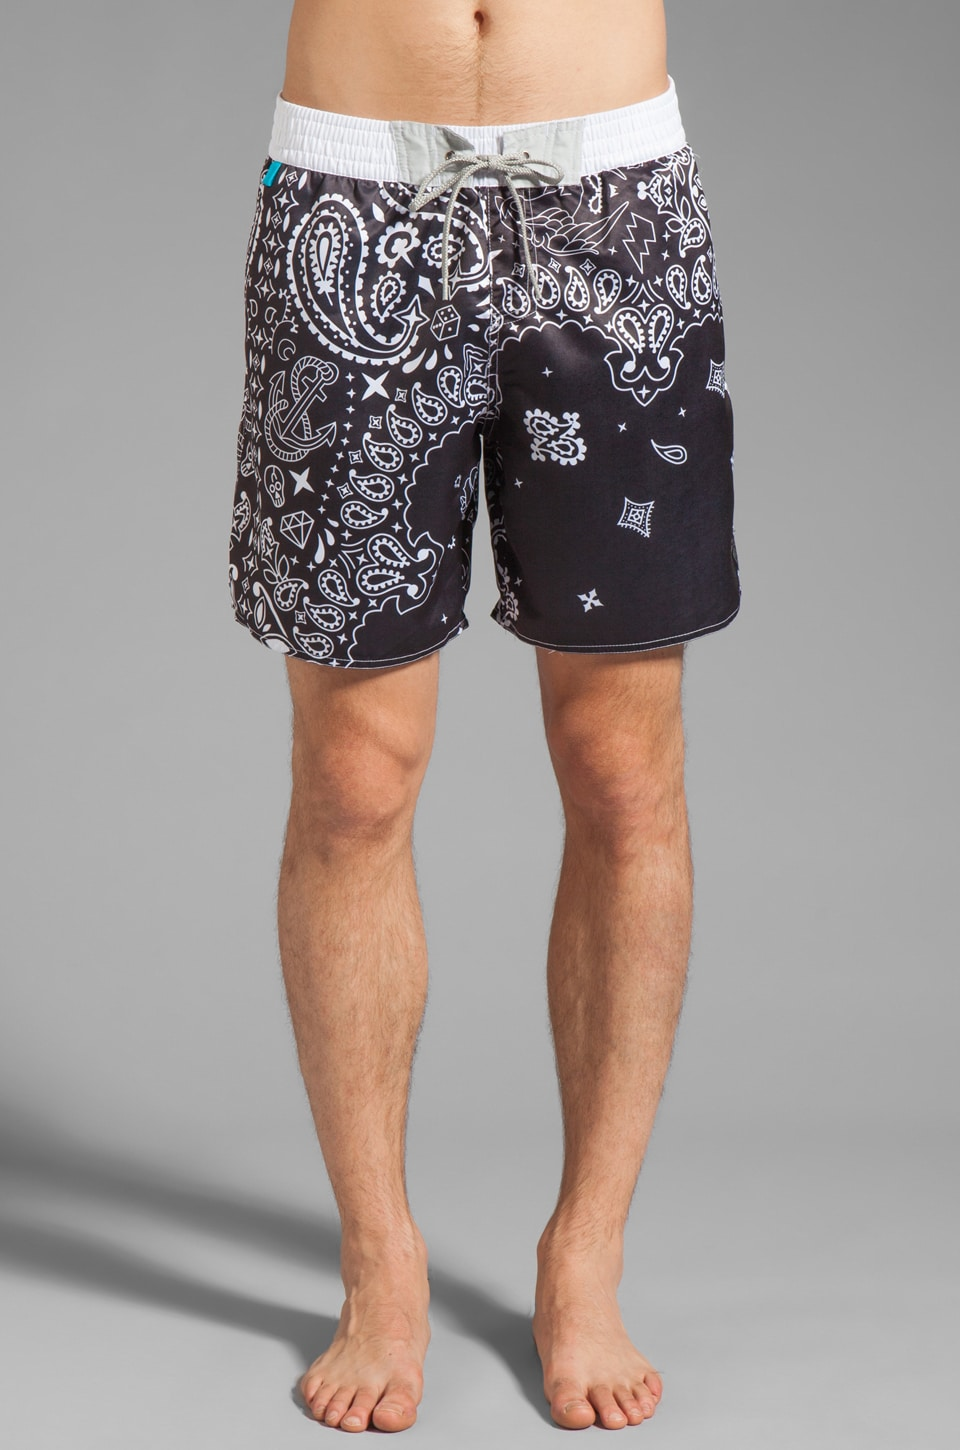 Cohesive & co. Bermuda Paisley Boardshort in Black